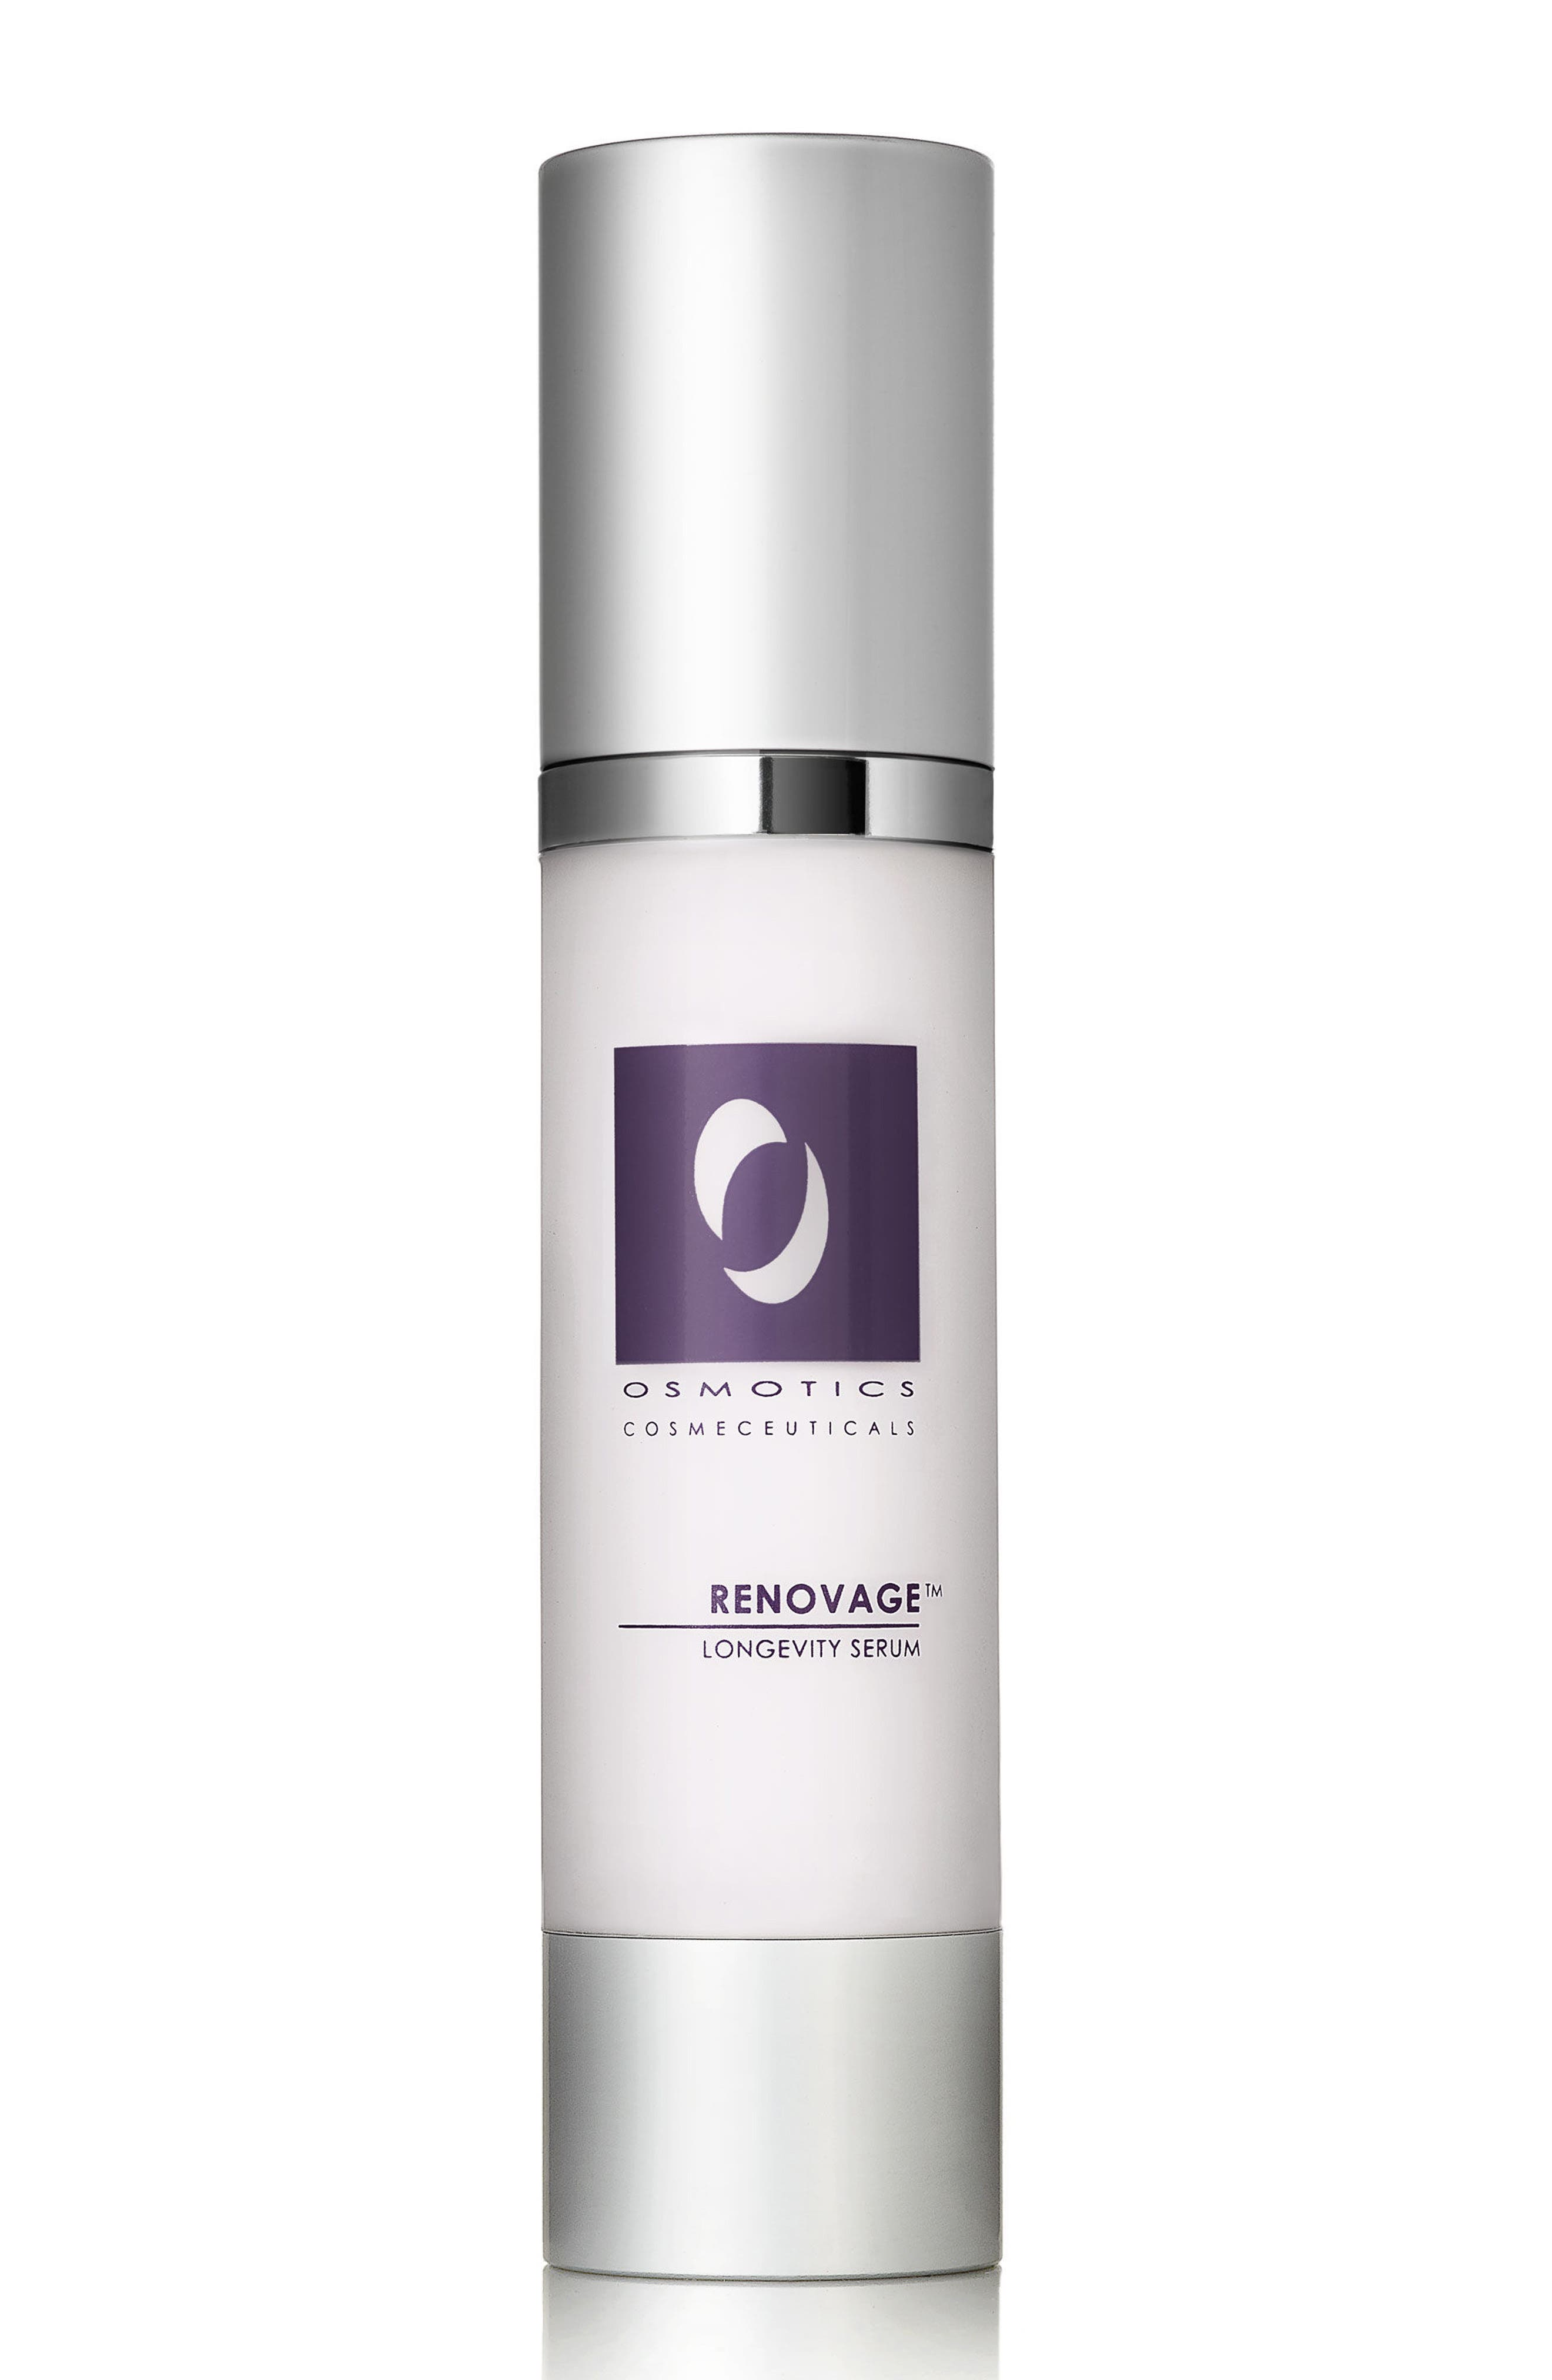 Osmotics Cosmeceuticals Renovage™ Longevity Serum